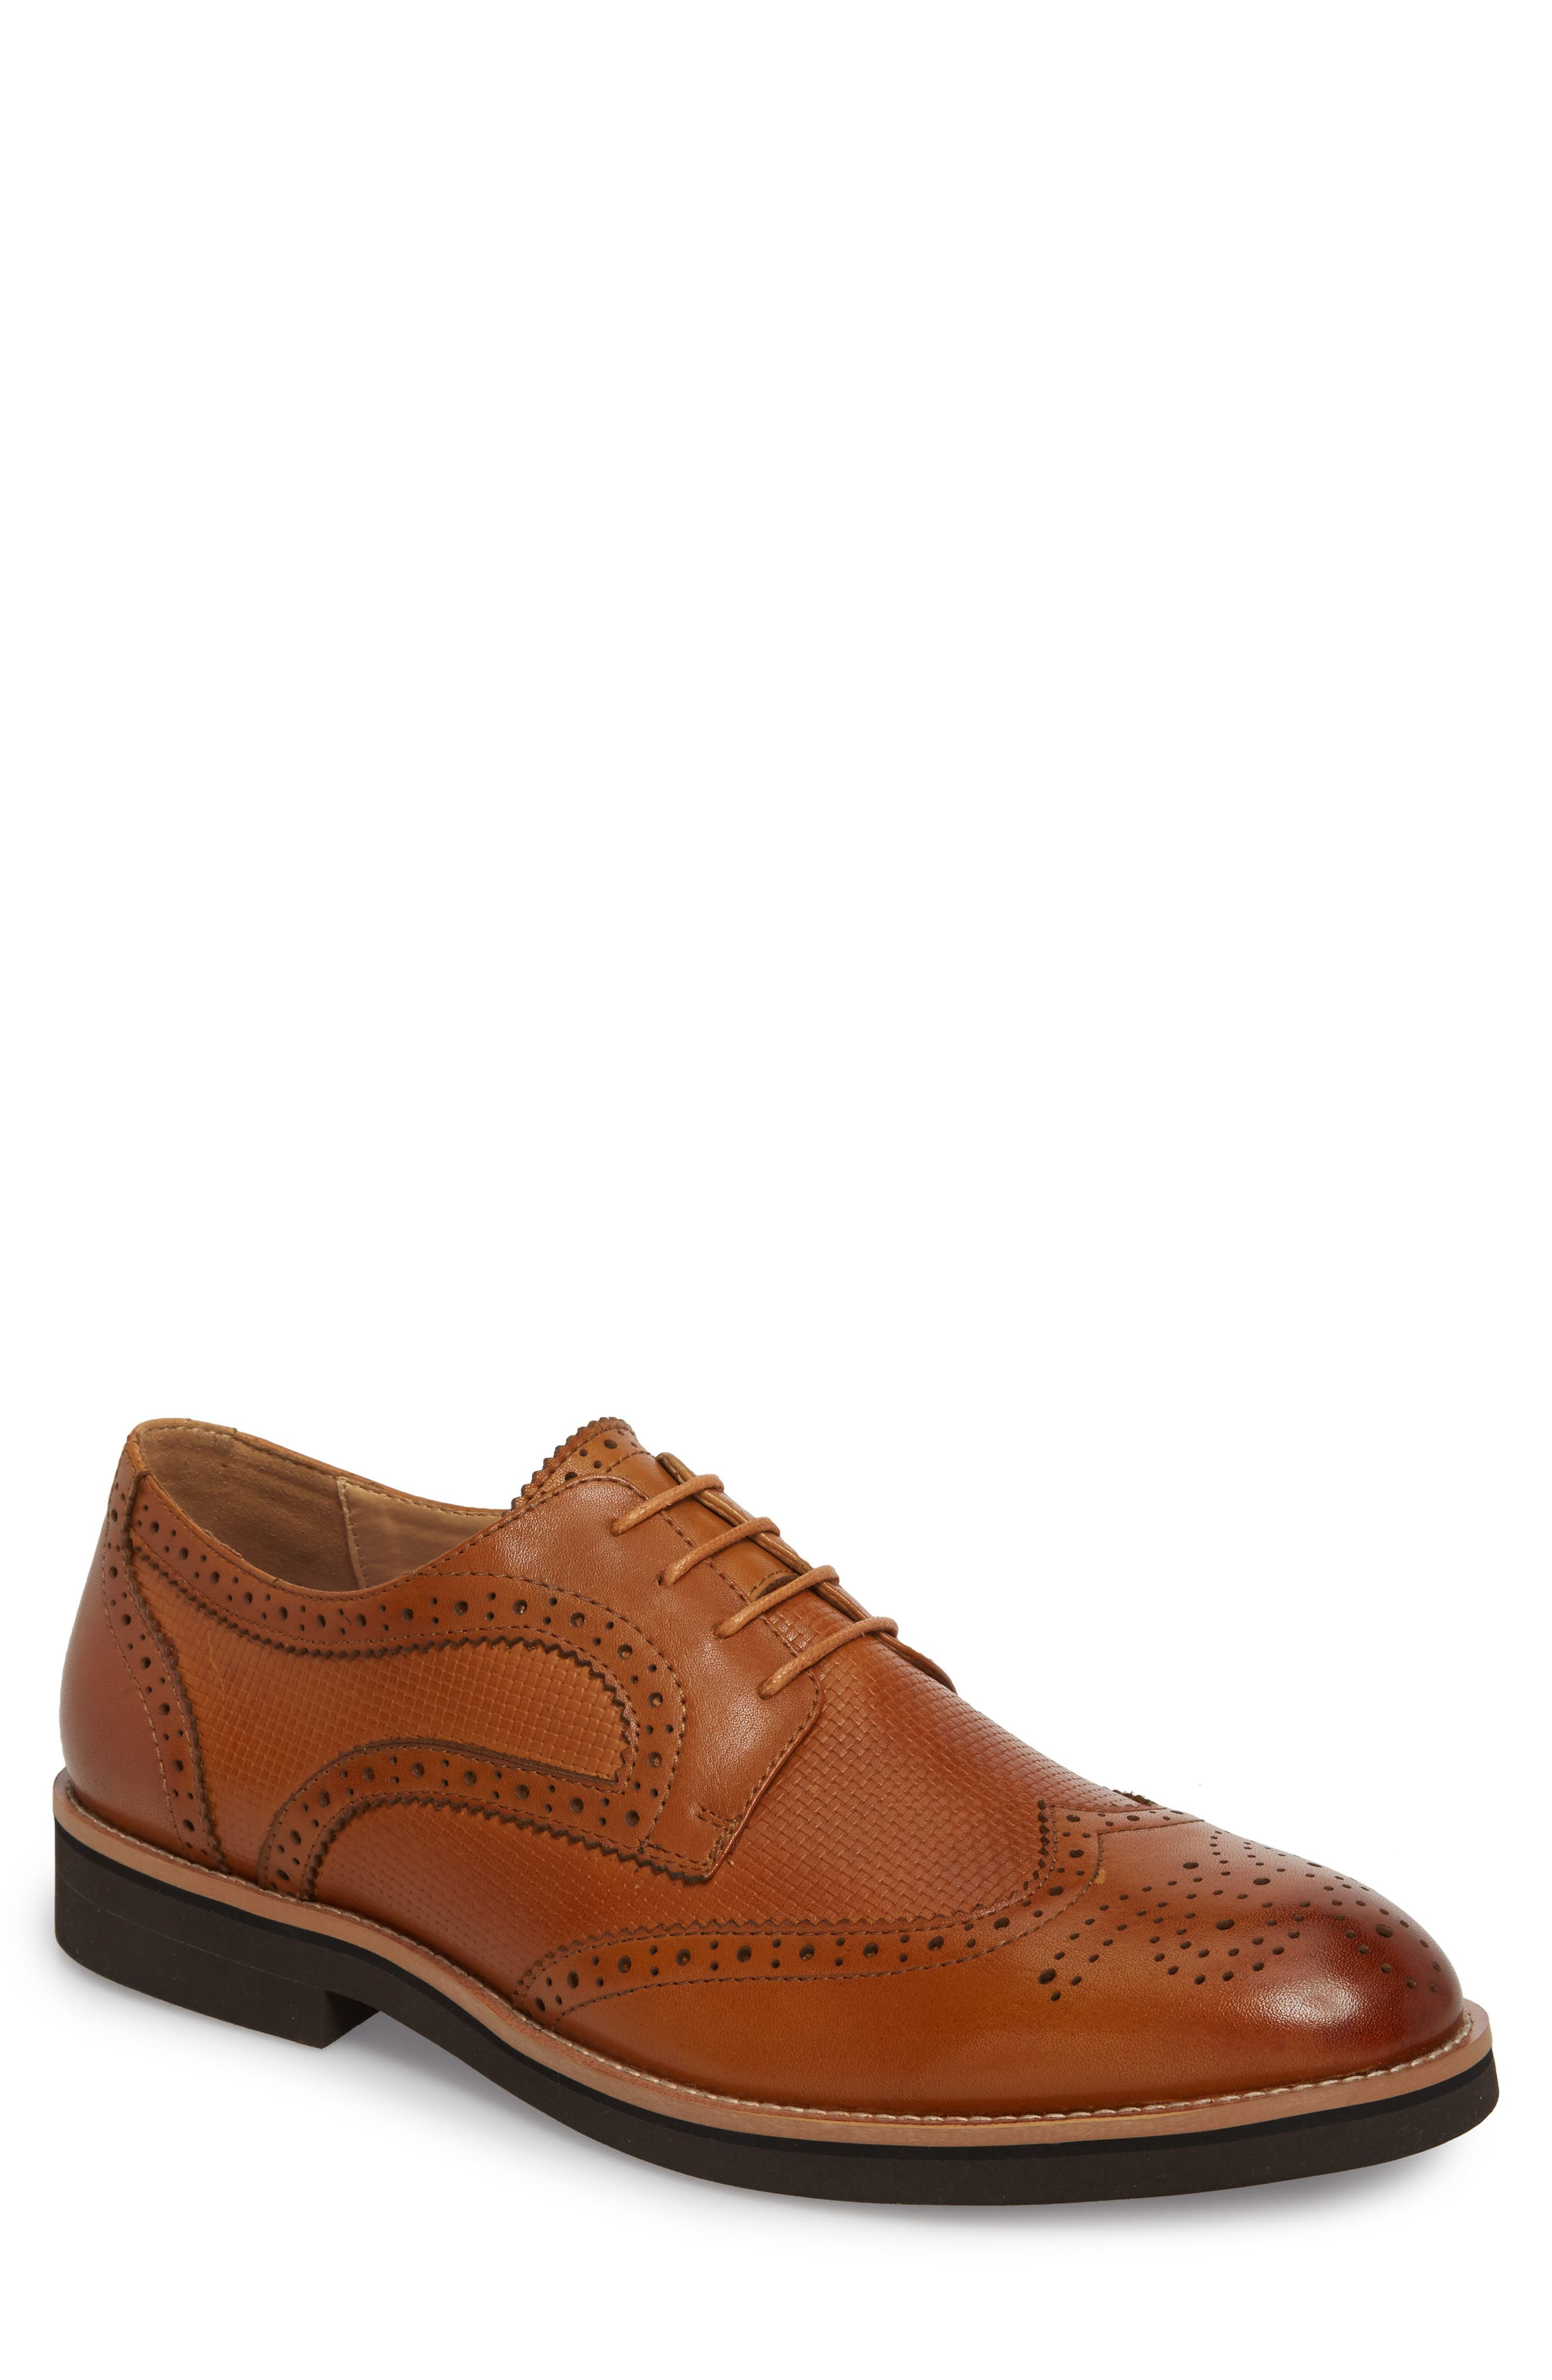 Cleave Embossed Wingtip,                             Main thumbnail 1, color,                             Cognac Leather